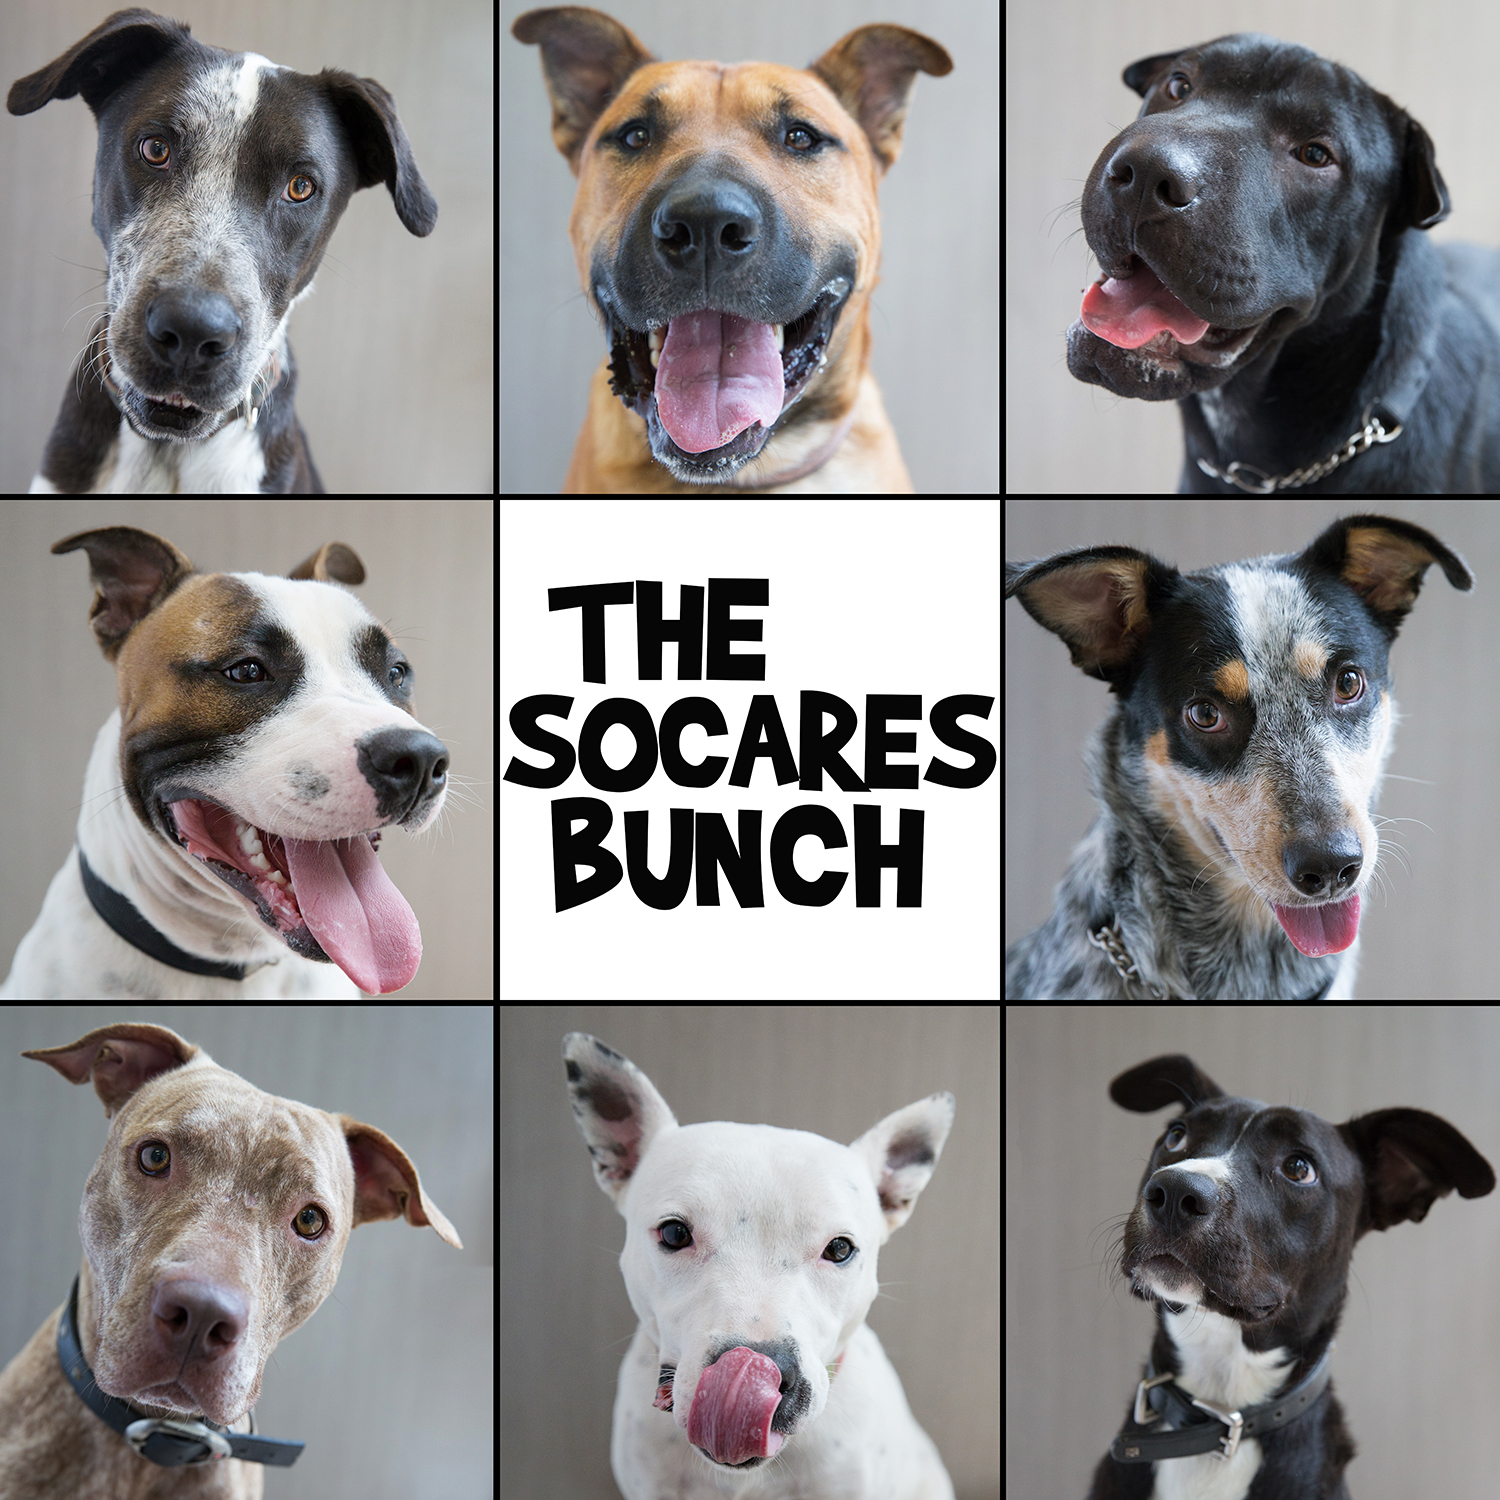 The socares bunch 2